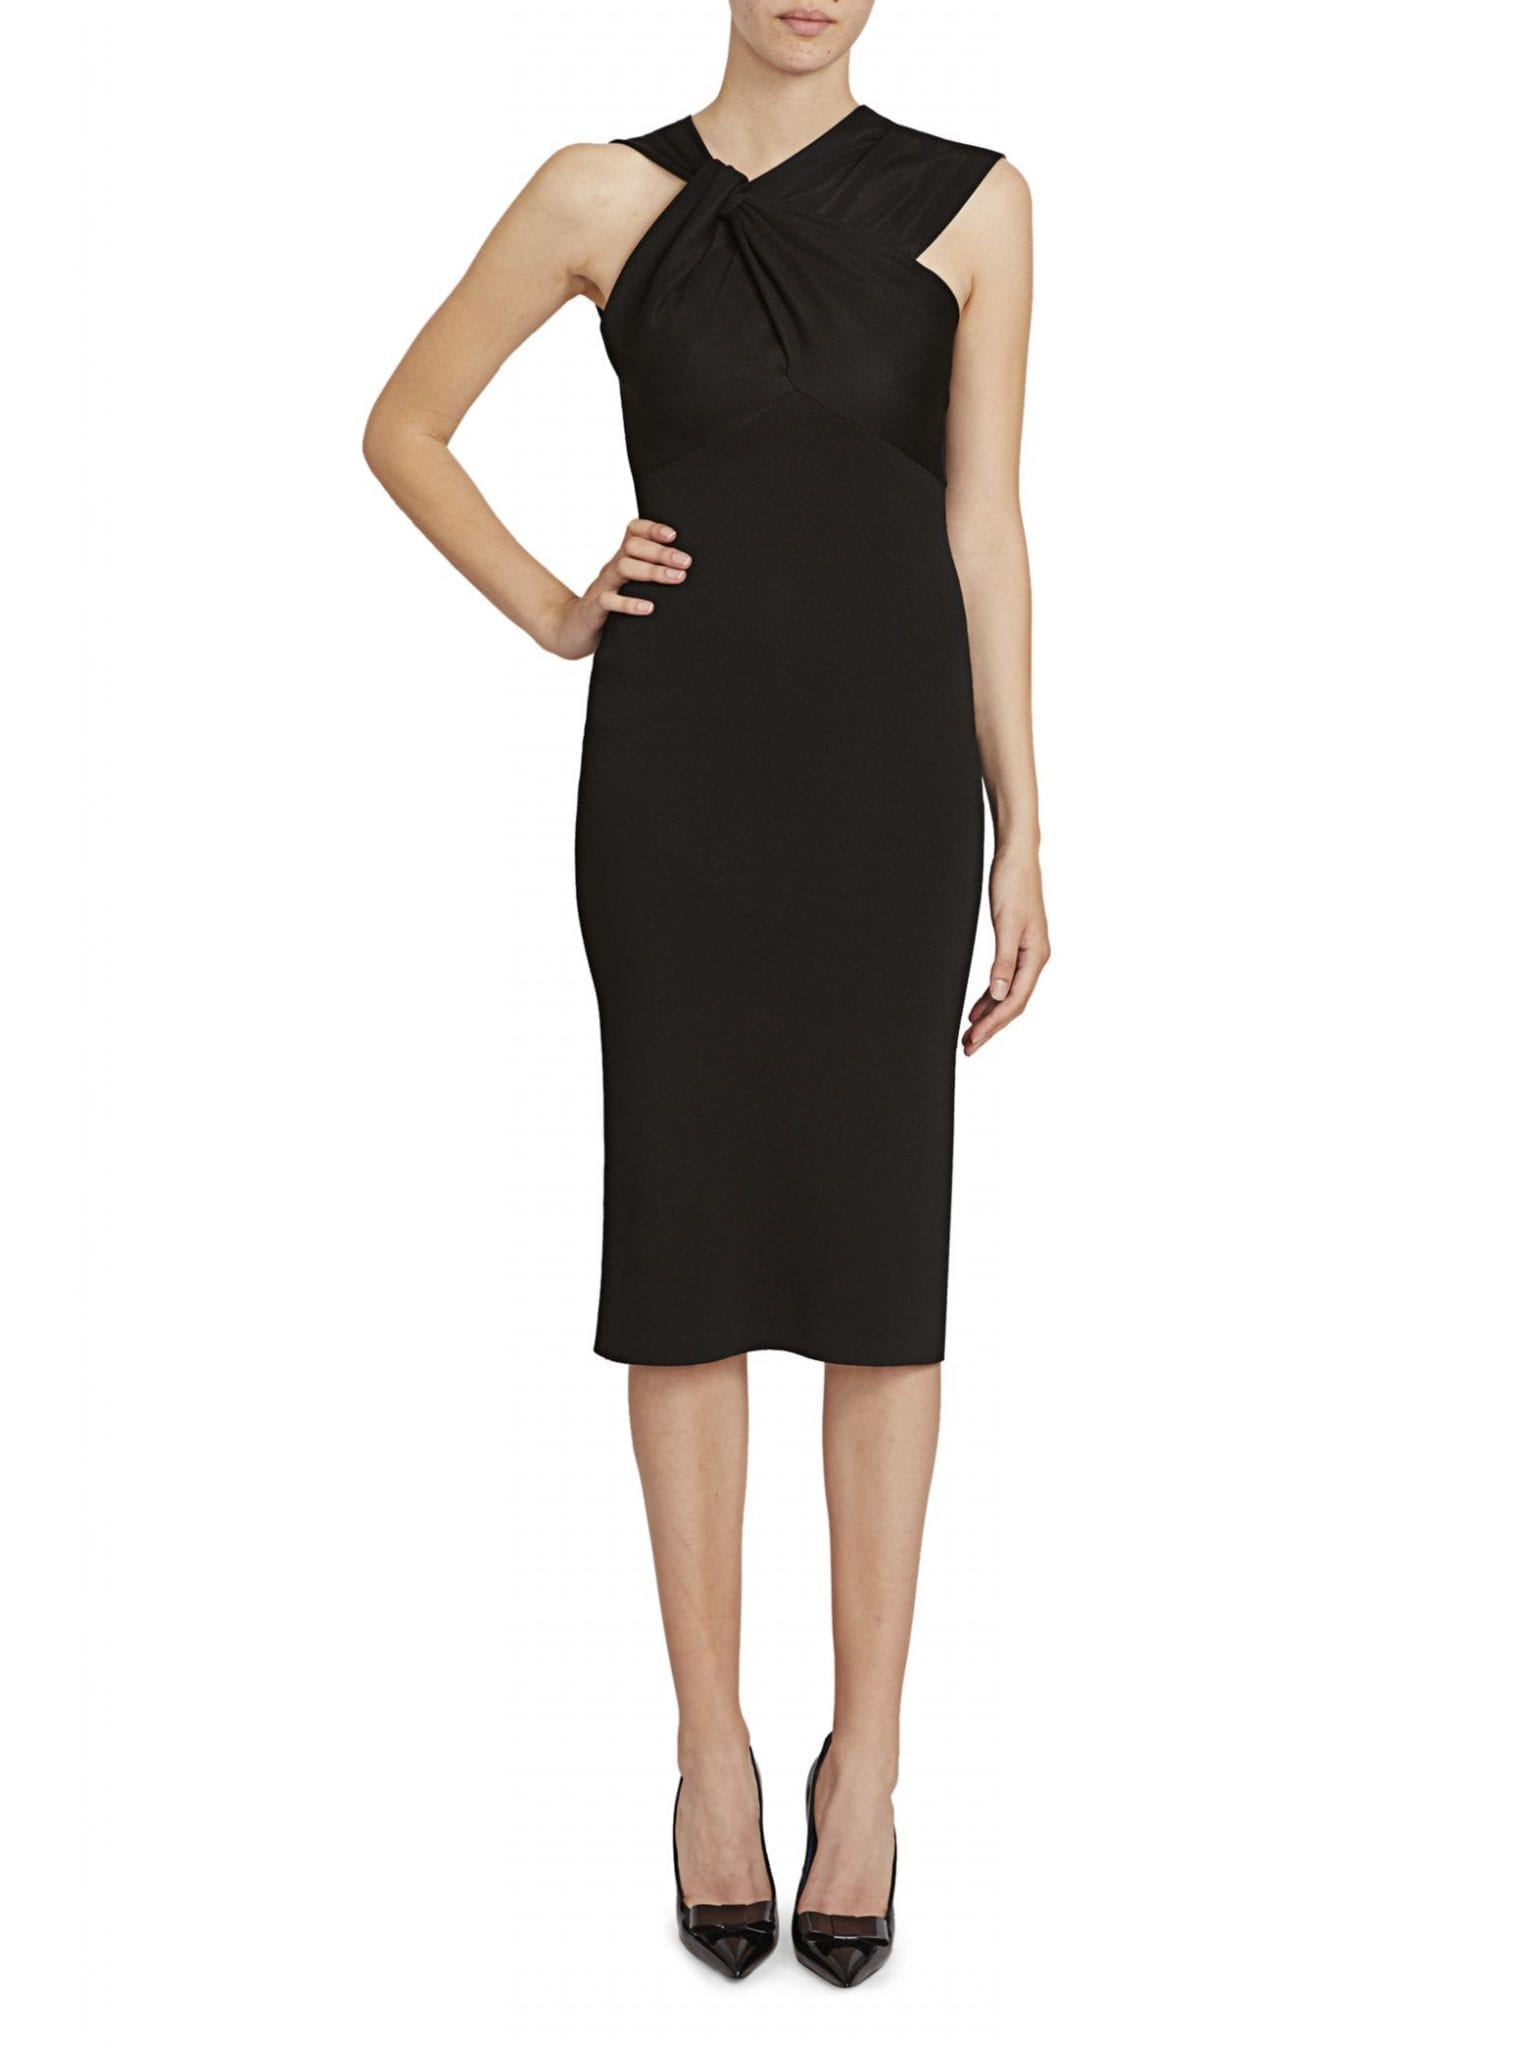 VICTORIA BECKHAM Knotted Drape Sheath Dress